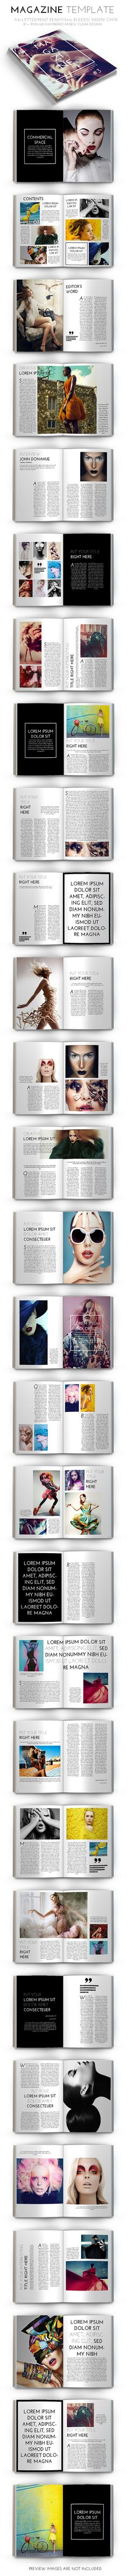 Magazine Template on Behance